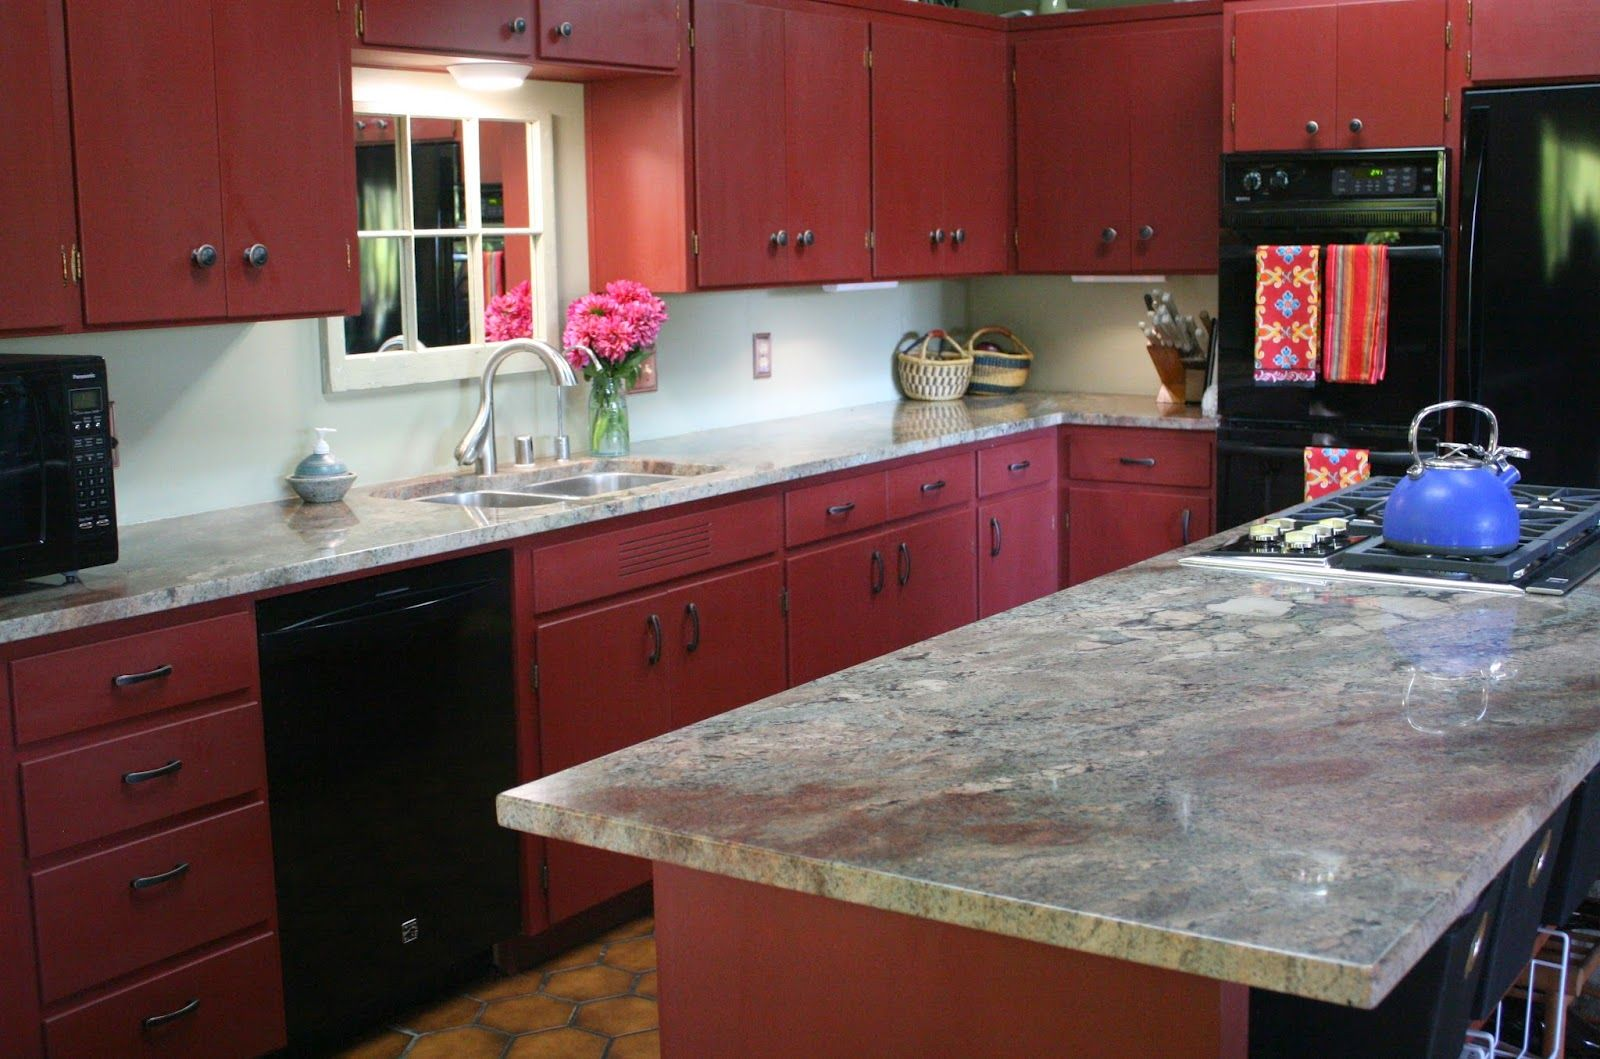 We Were Recently Hired To Paint Some Outdated Blonde Wood Cabinets The Homeowners Replaced Their Red Kitchen Decor Yellow Kitchen Decor Black Kitchen Decor